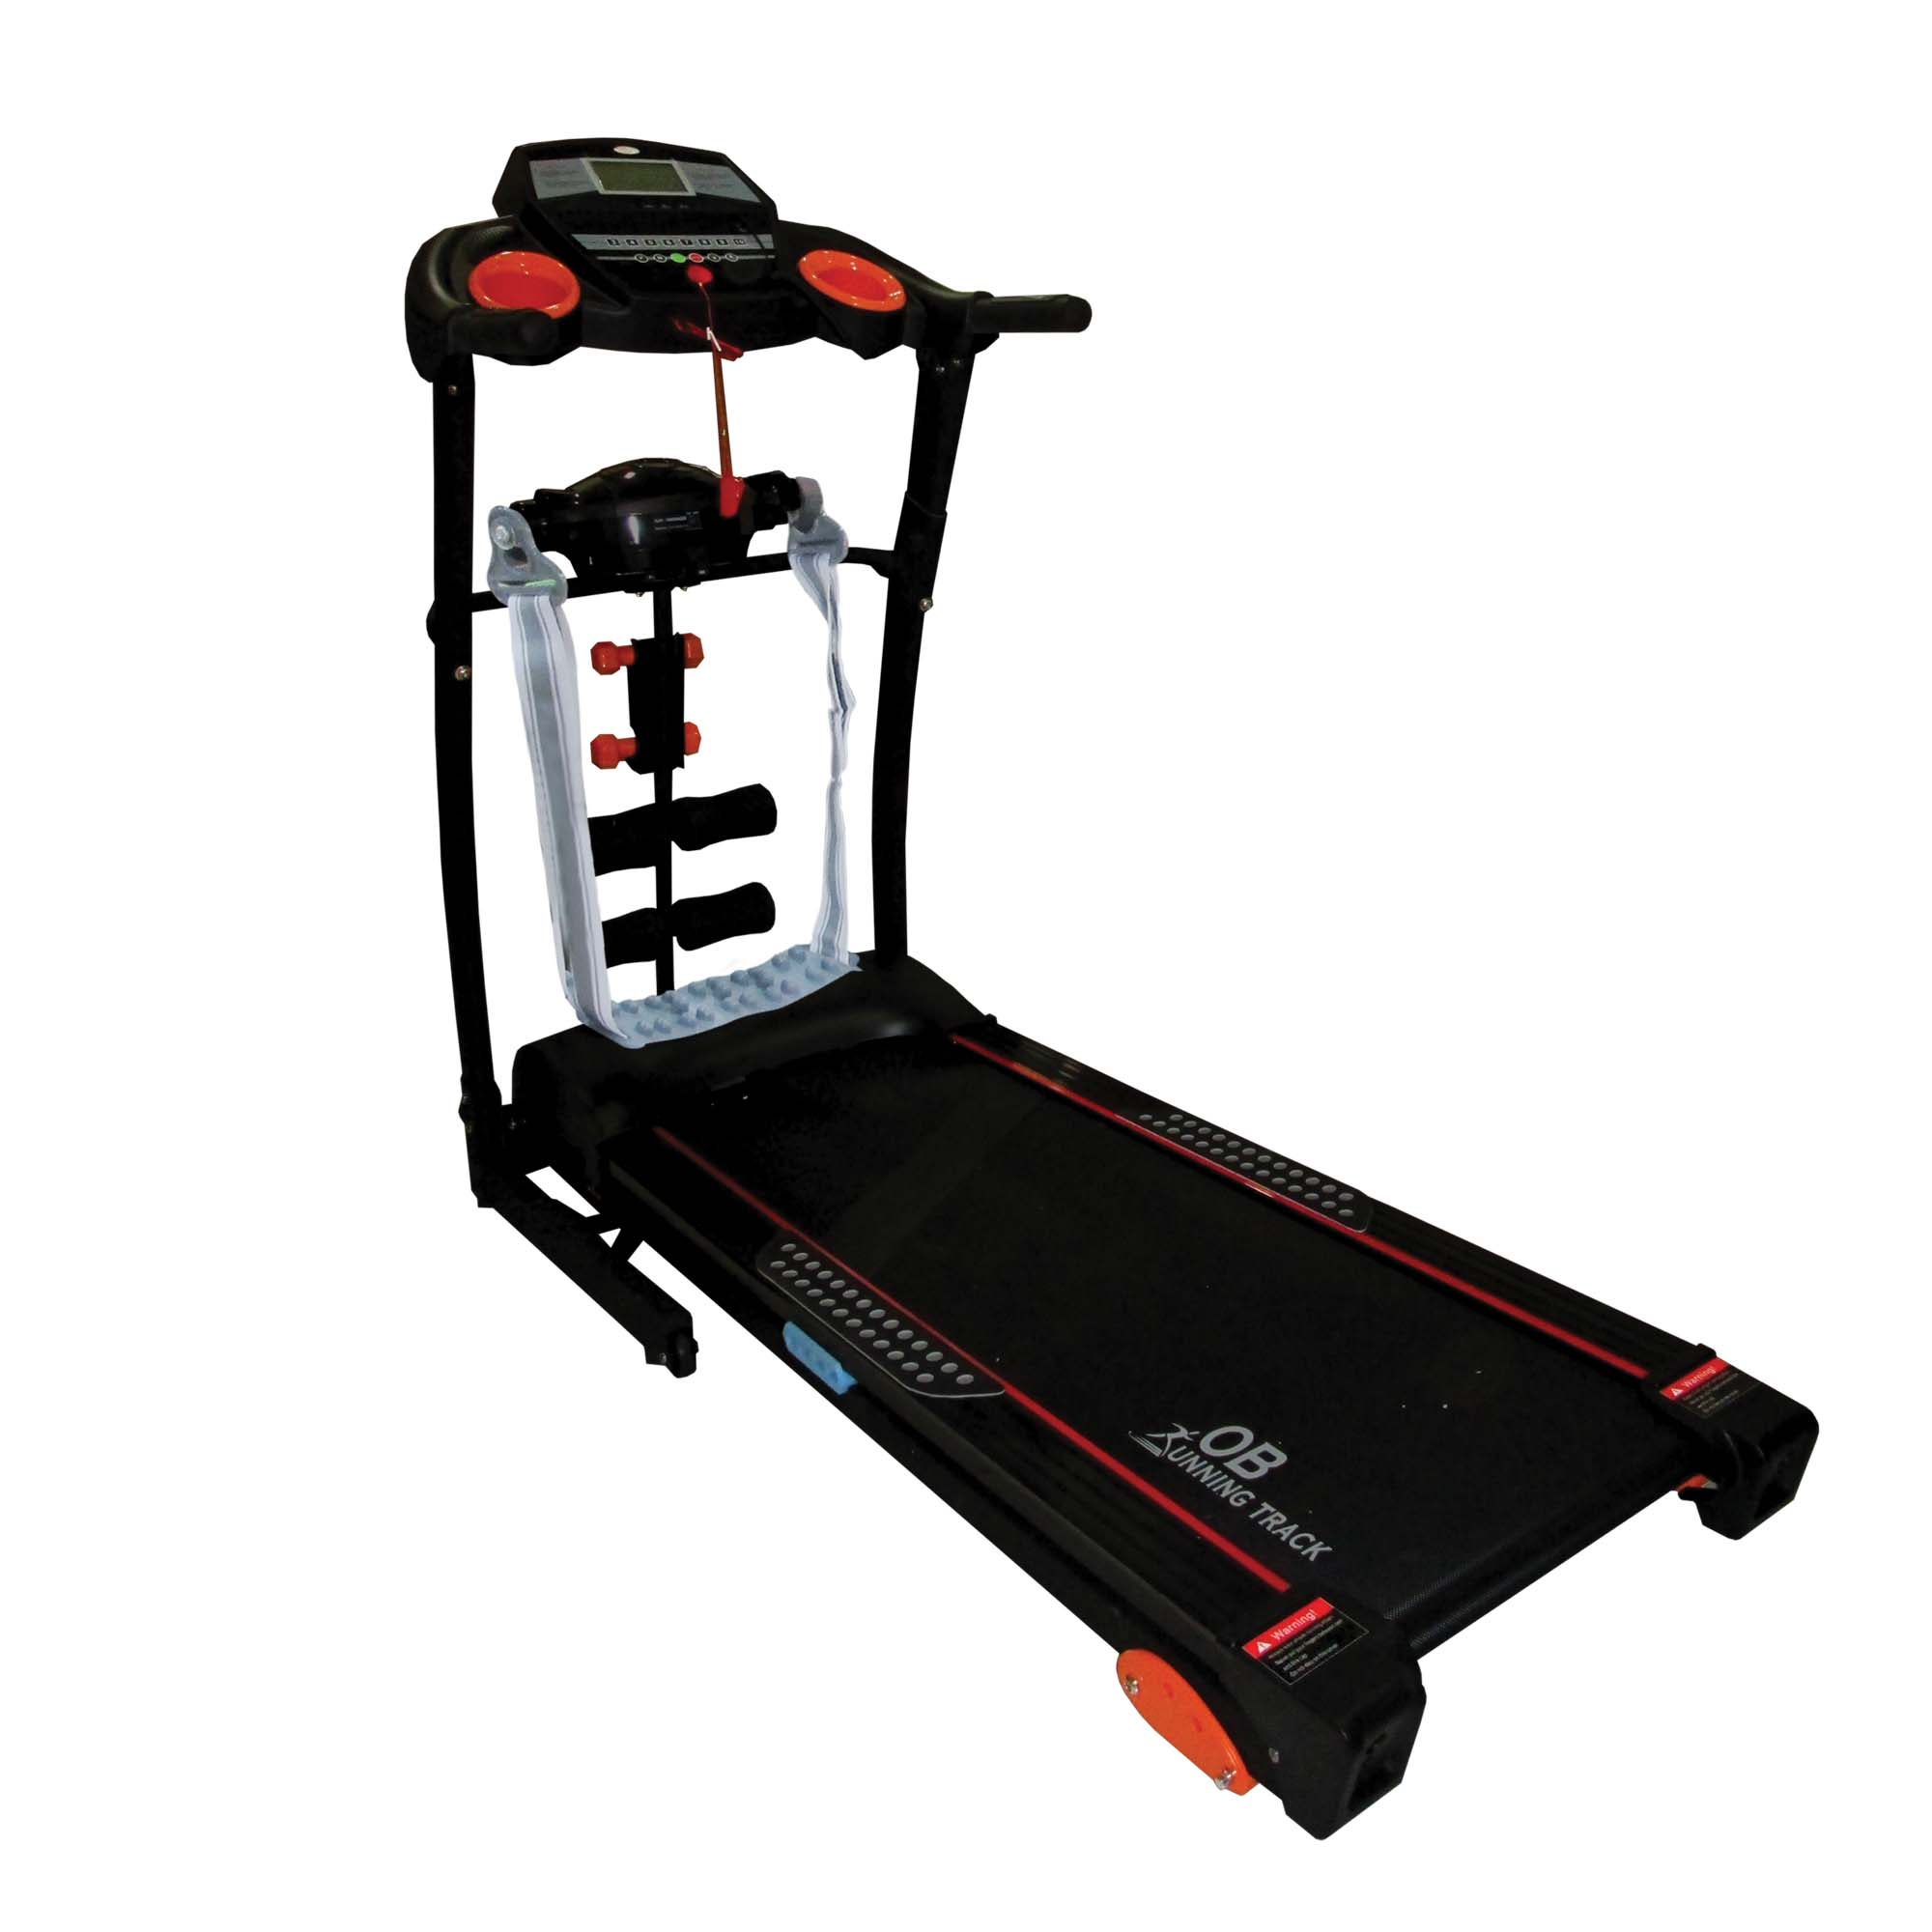 Jual Alat Fitness OB 1029 Electric Treadmill Multifungsi